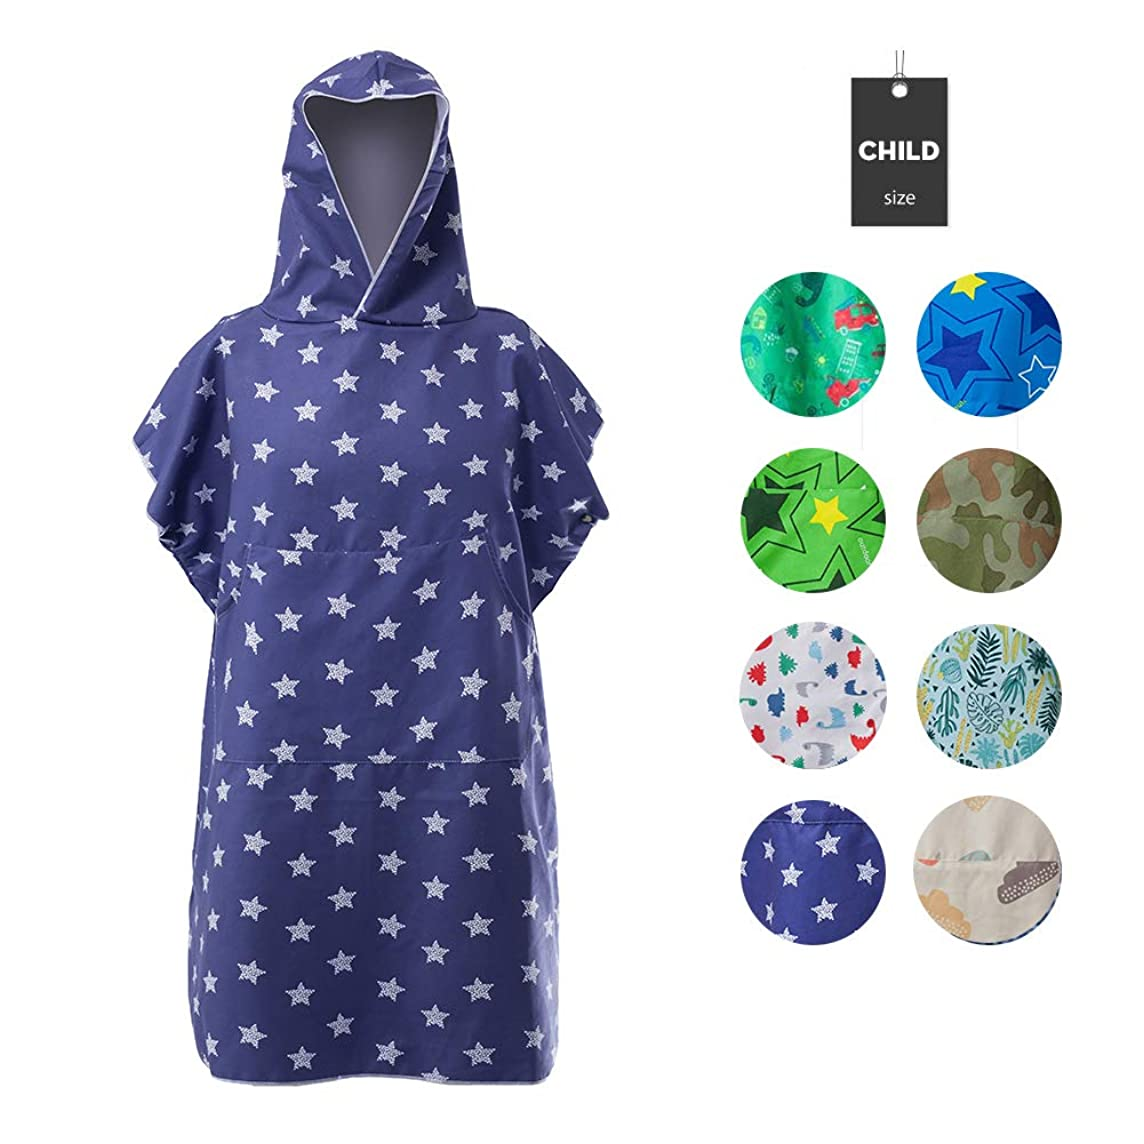 Runpilot Kids Beach Hooded Poncho Changing Bath Robe Towel with Pocket for Swimming Surfing